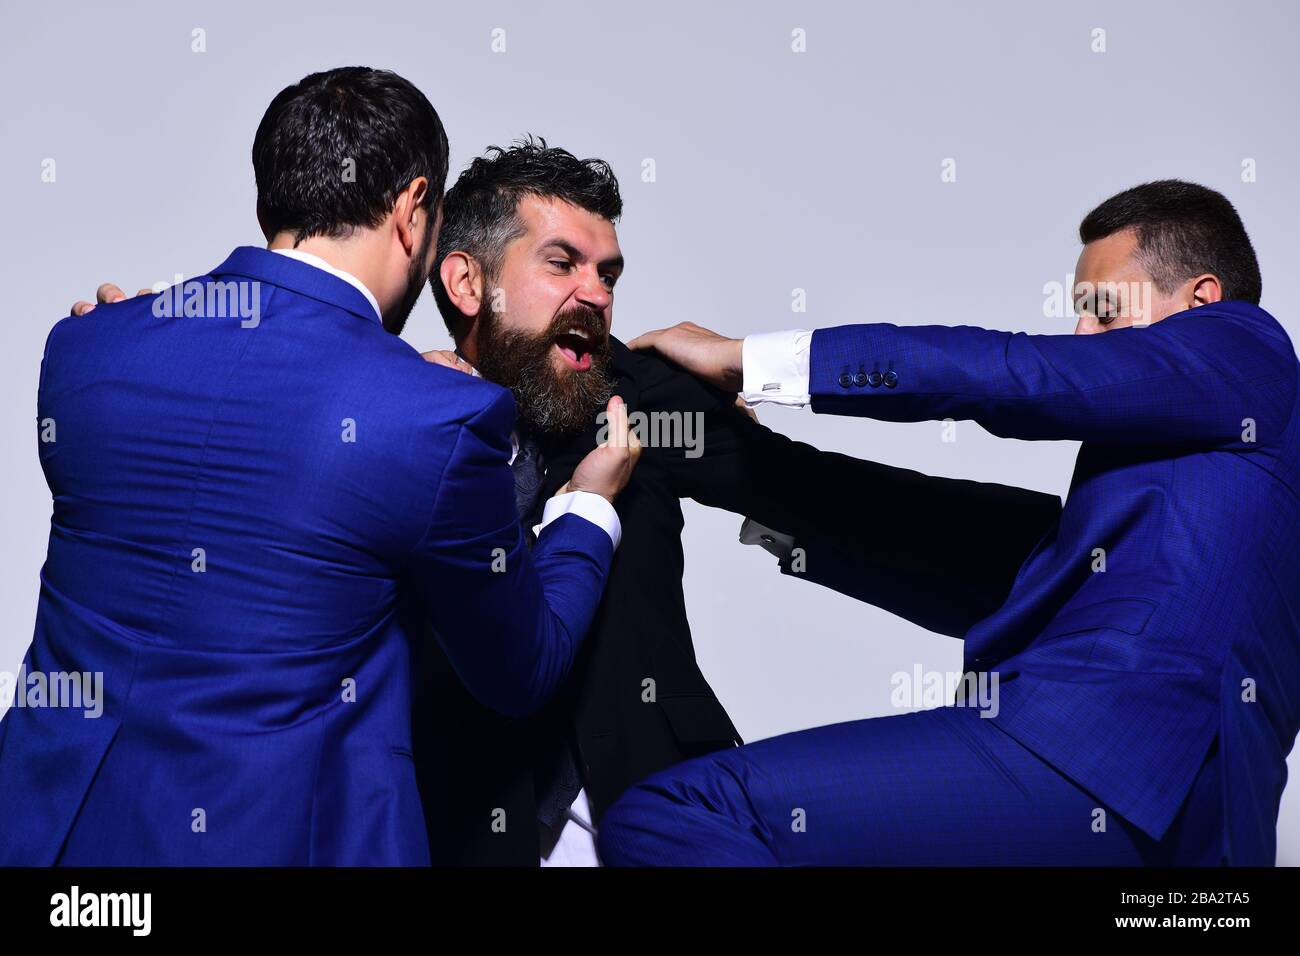 Businessmen with mad faces in formal suits on grey background. Business conflict and argument concept. Company leaders fight for business leadership. Coworkers decide upon best working position Stock Photo